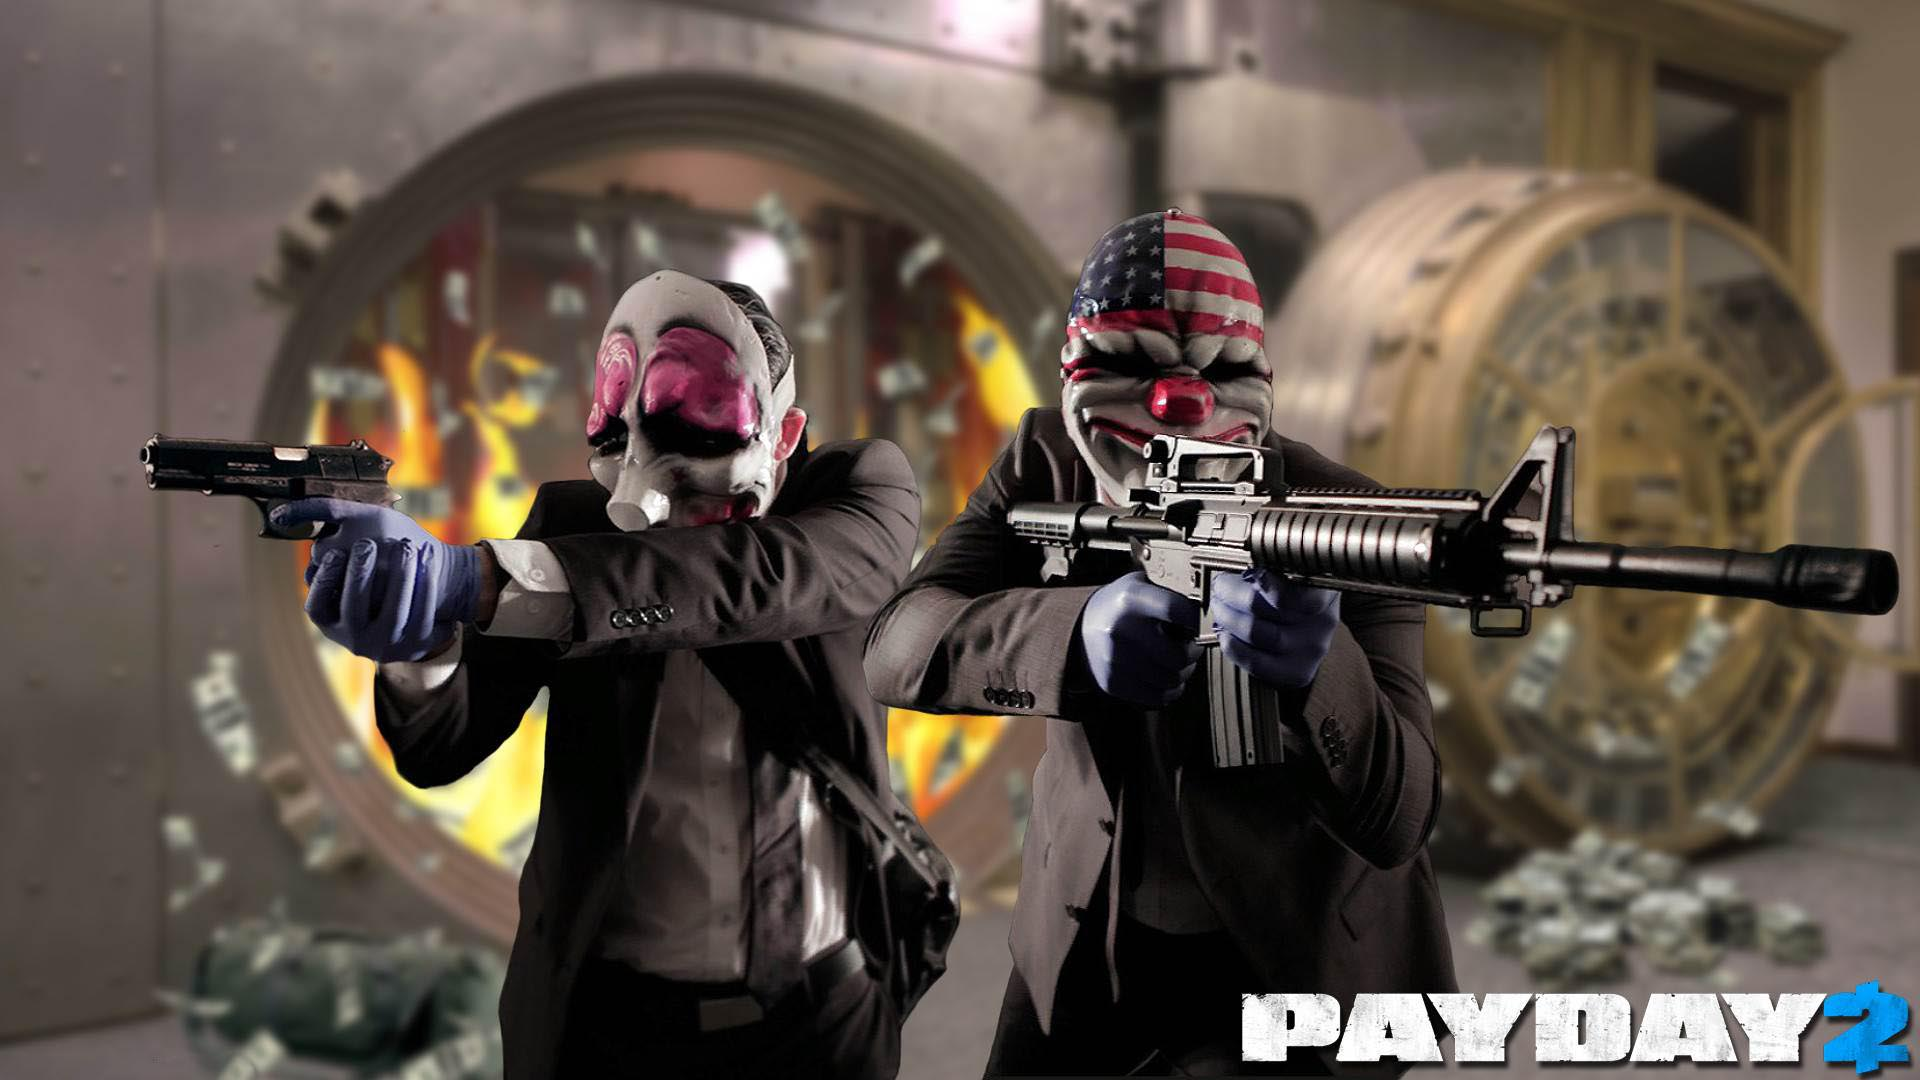 Wallpapers Fond D Ecran Pour Payday 2 Pc Ps3 Xbox 360